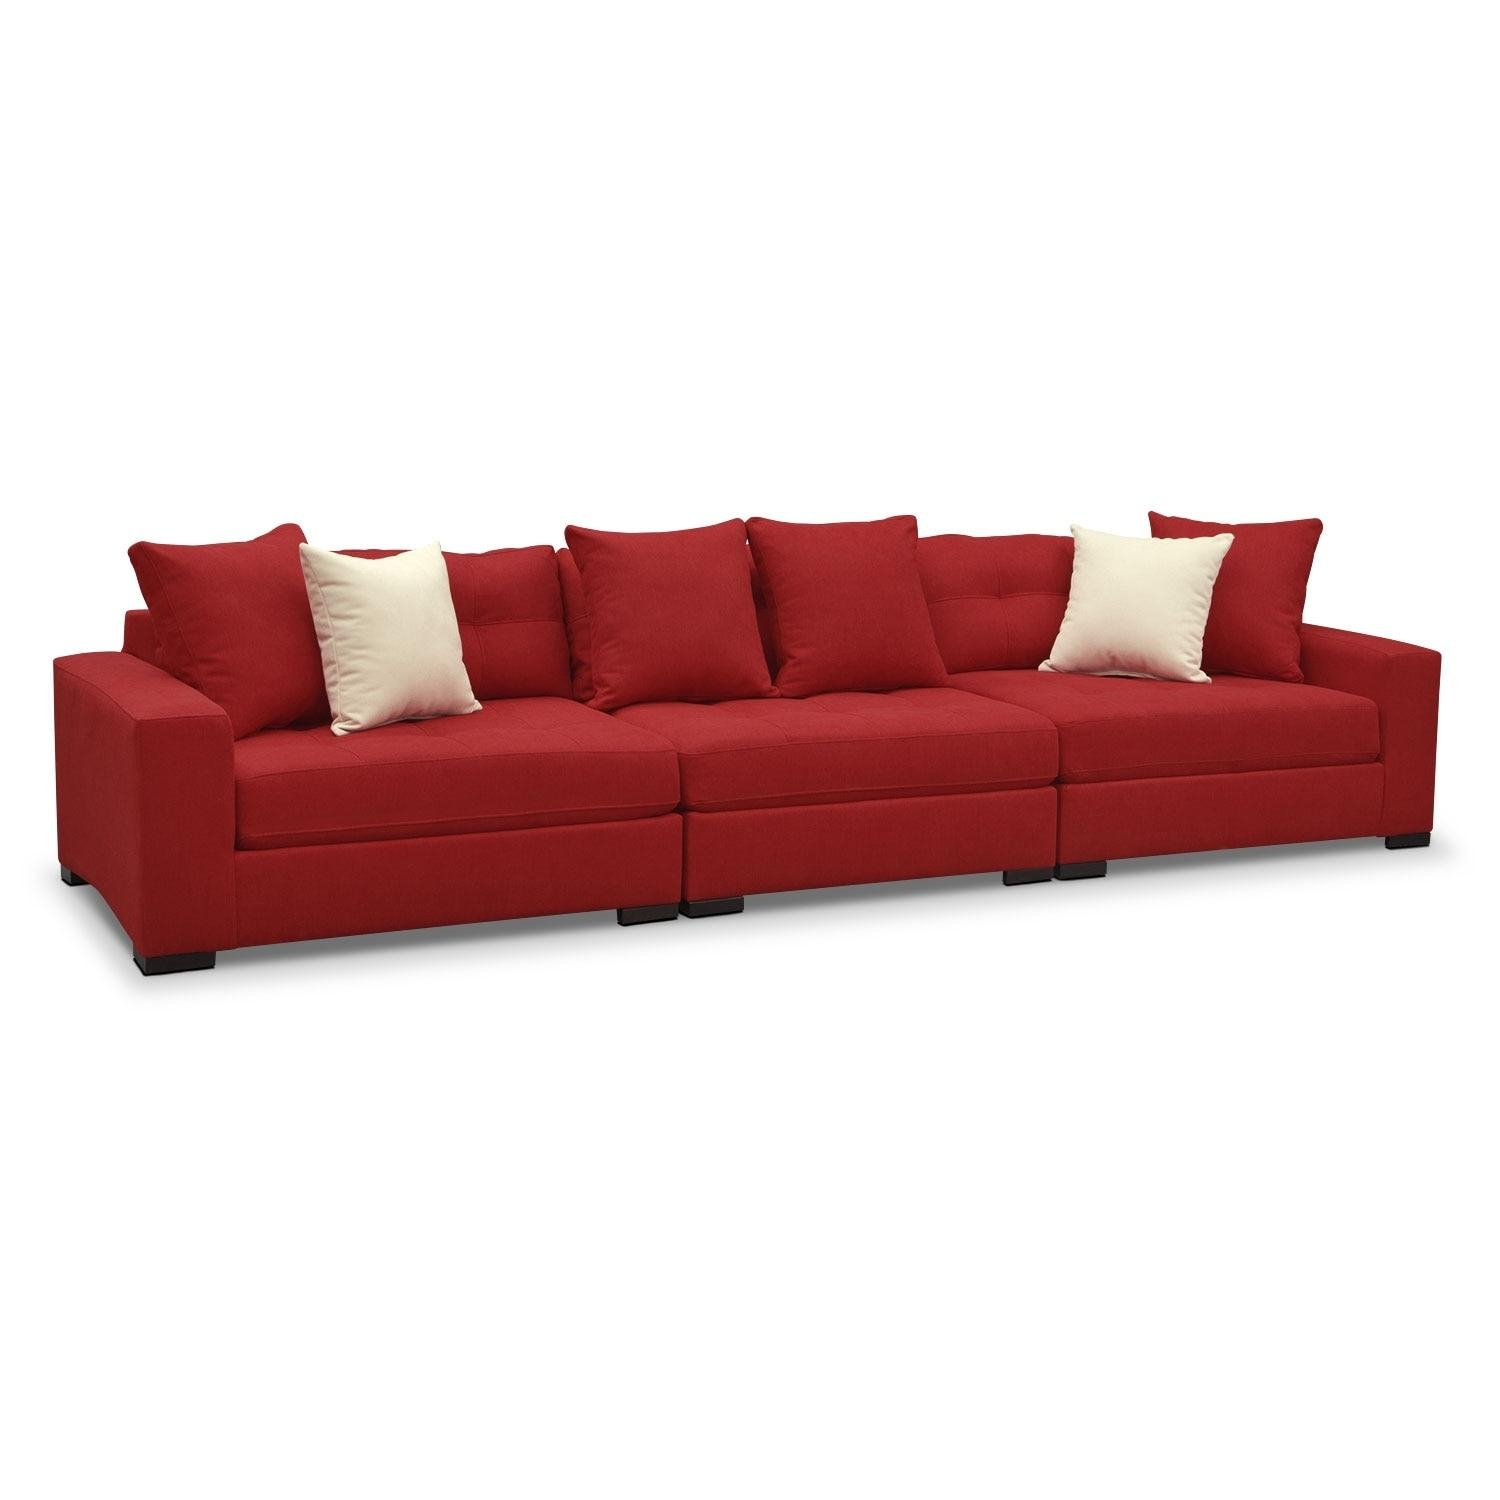 Venti Modular Sofa – Red | Value City Furniture With Regard To Value City Sofas (Image 20 of 20)